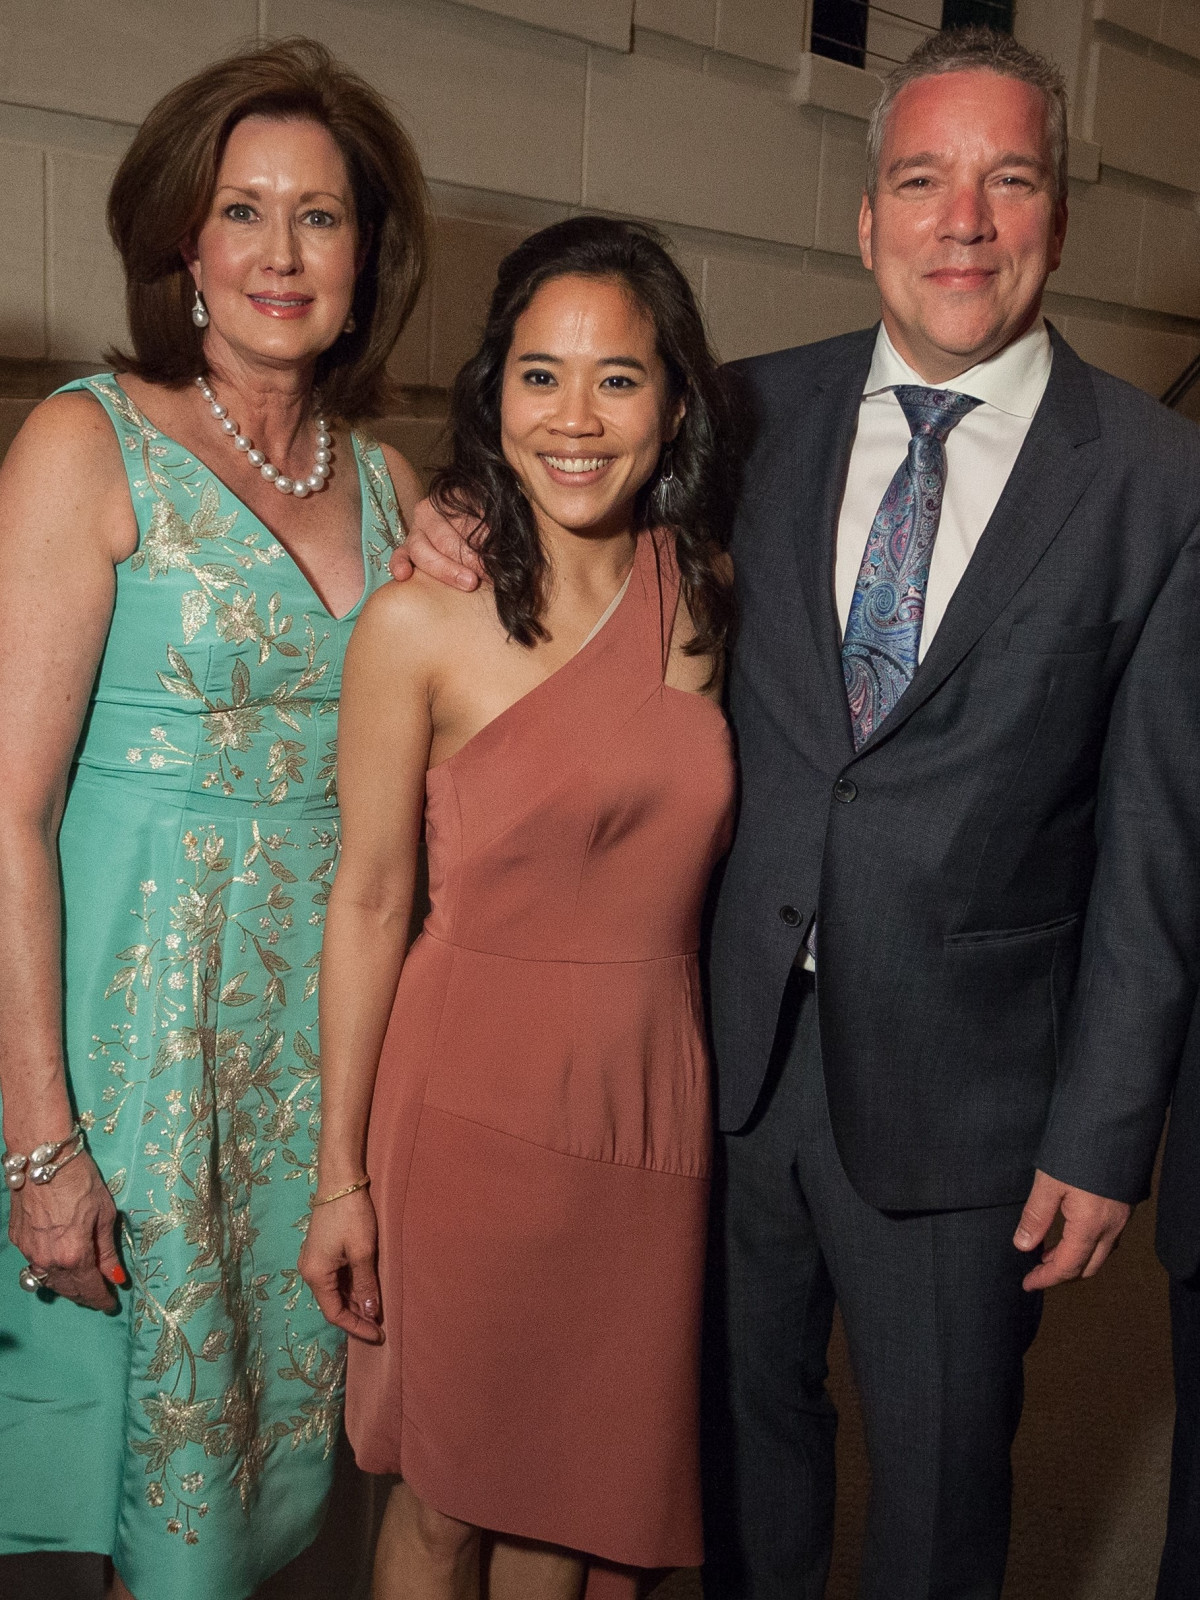 Dana Porter, Sandra Doan and Jacques Marquis, Cliburn President and CEO, TBT Gala 2018